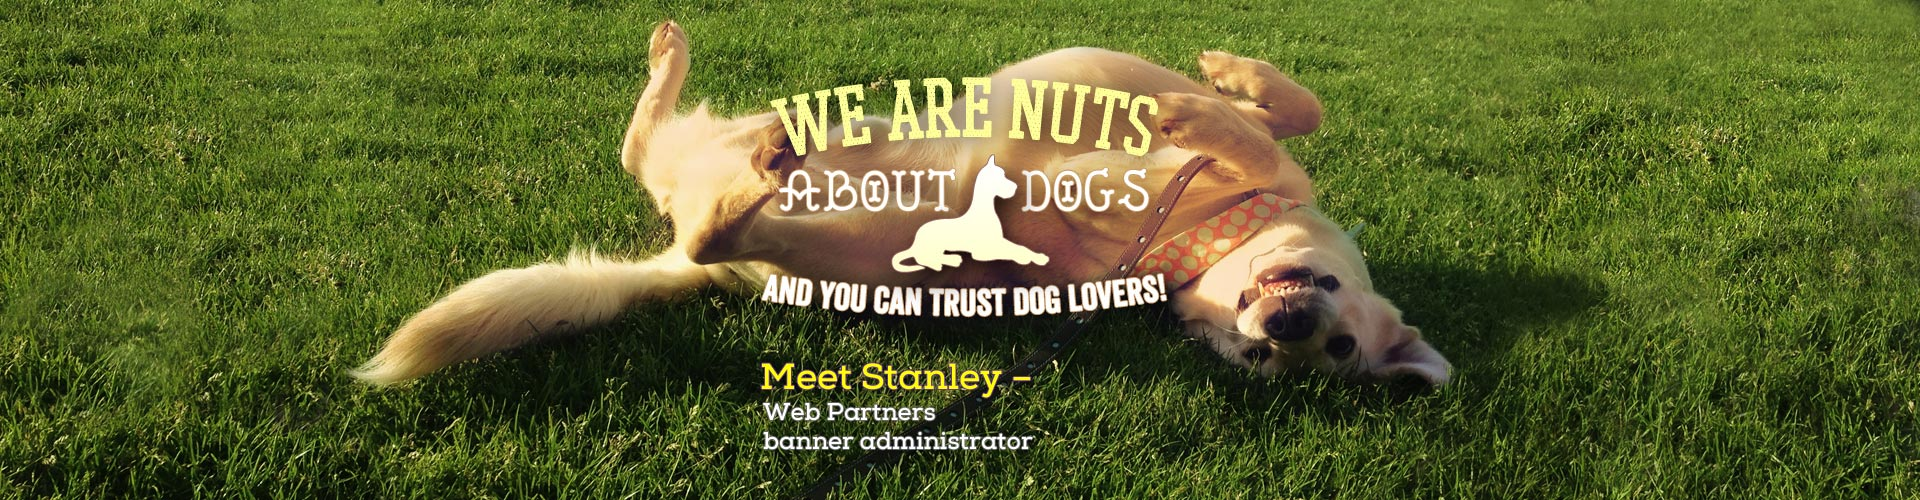 stanley-administrator